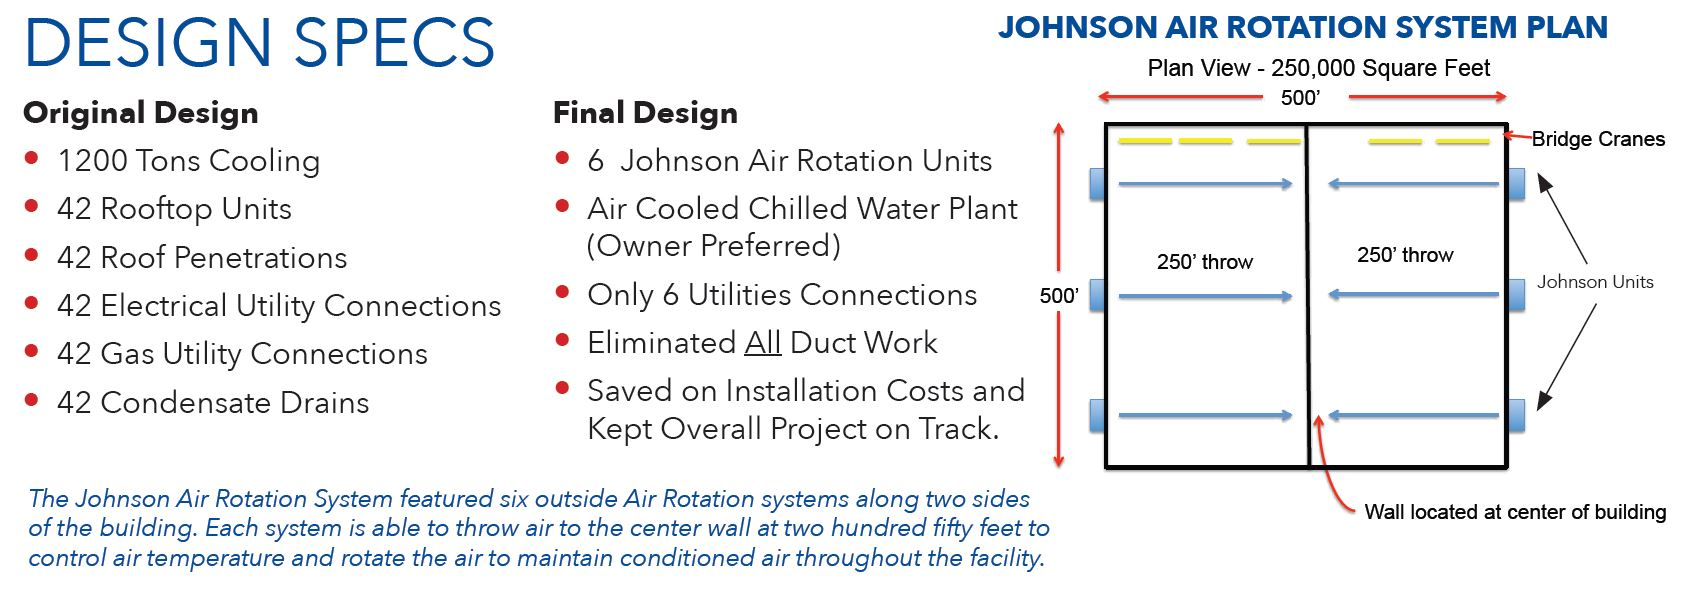 Johnson Air-Rotation Systems